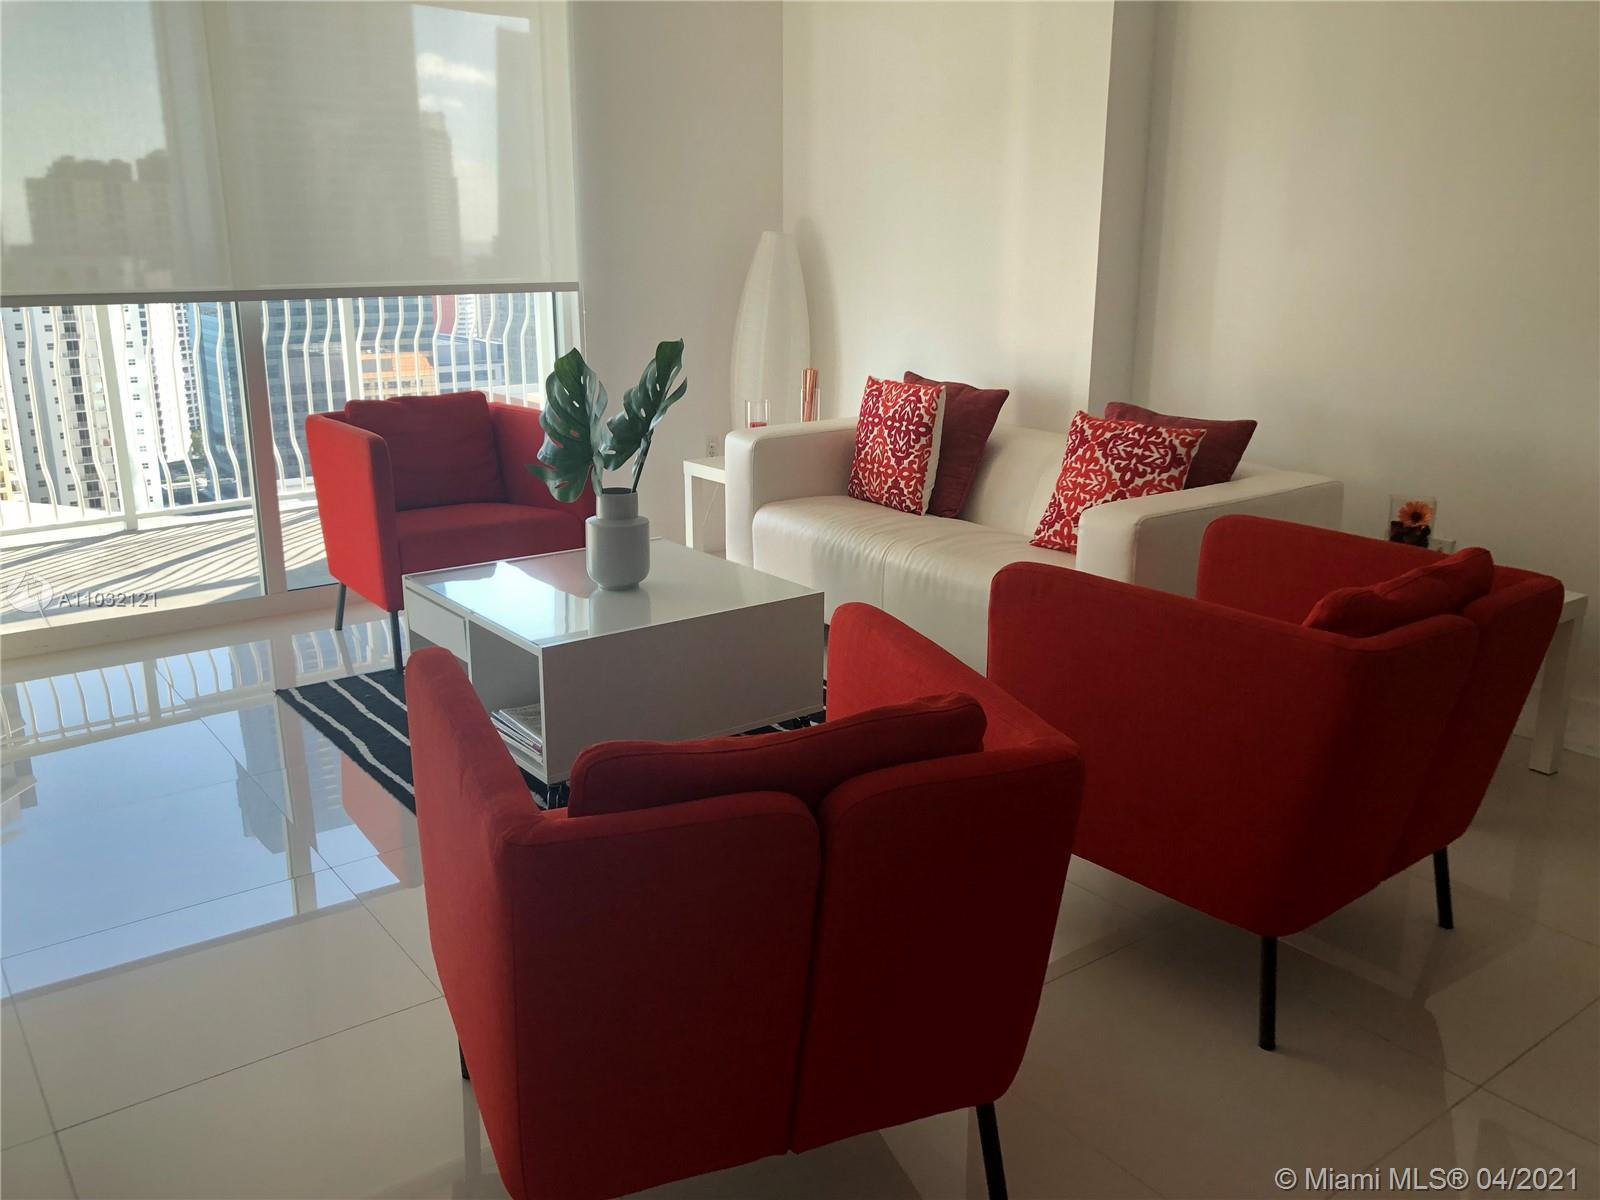 ENJOY MIAMI STYLE LIFE, GREAT VIEW. TILE FLOOR IN THE WHOLE APARTMENT. BUILDING ALLOWS SHORT TERM. G